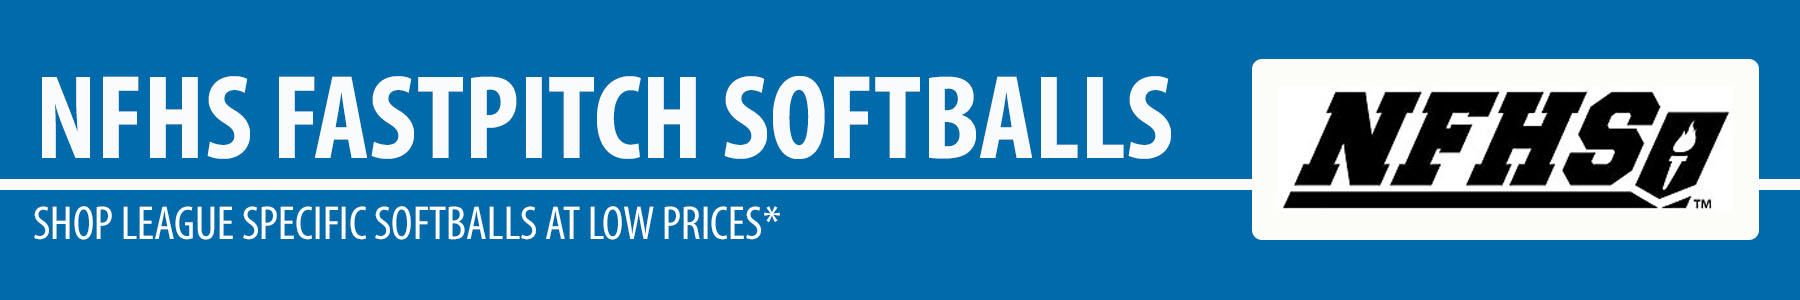 High School Softballs - NFHS Game Softballs - Fastpitch High School Softballs